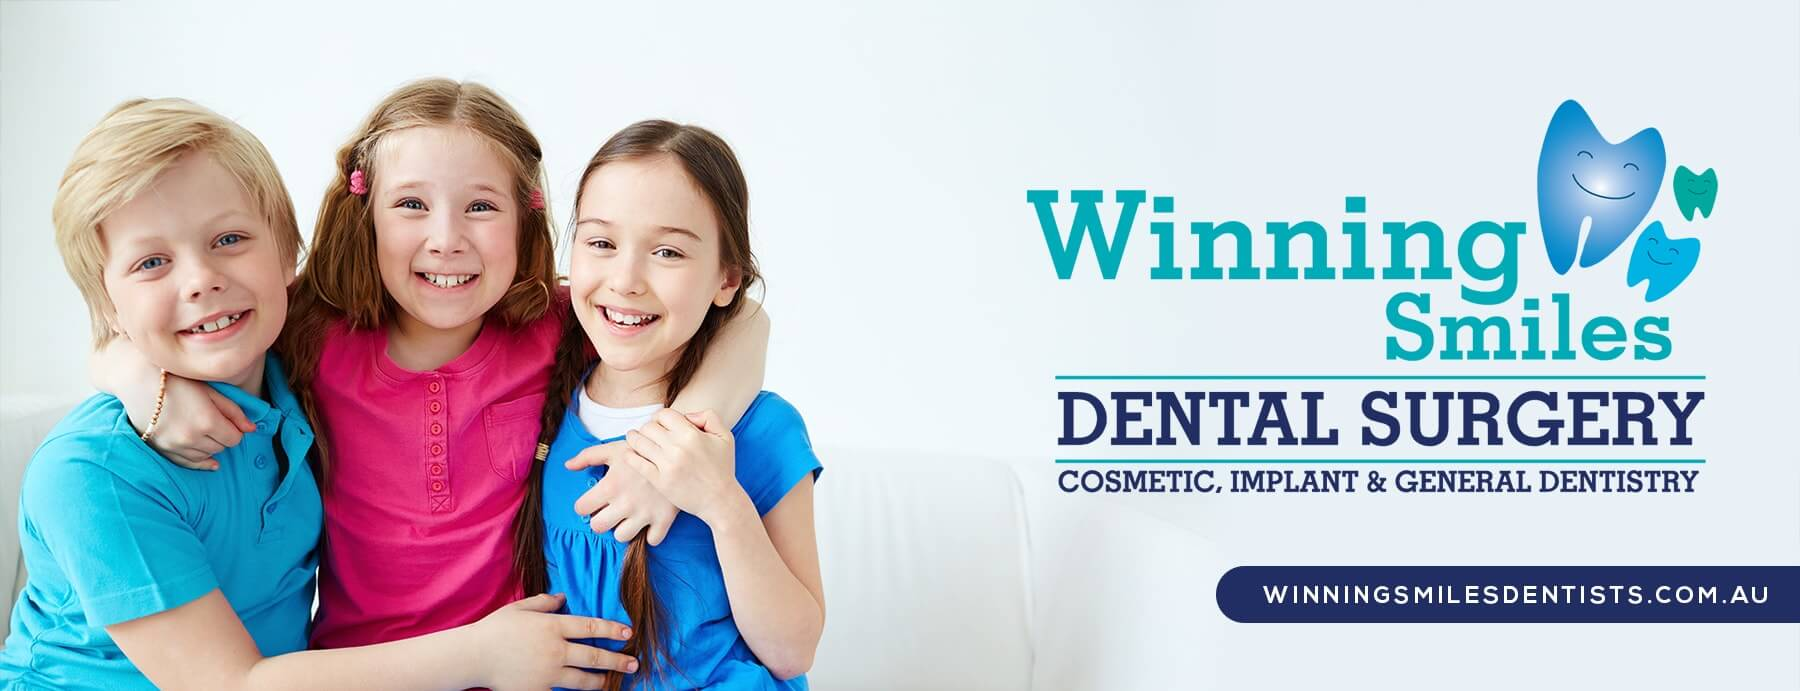 Winning Smile Dentists